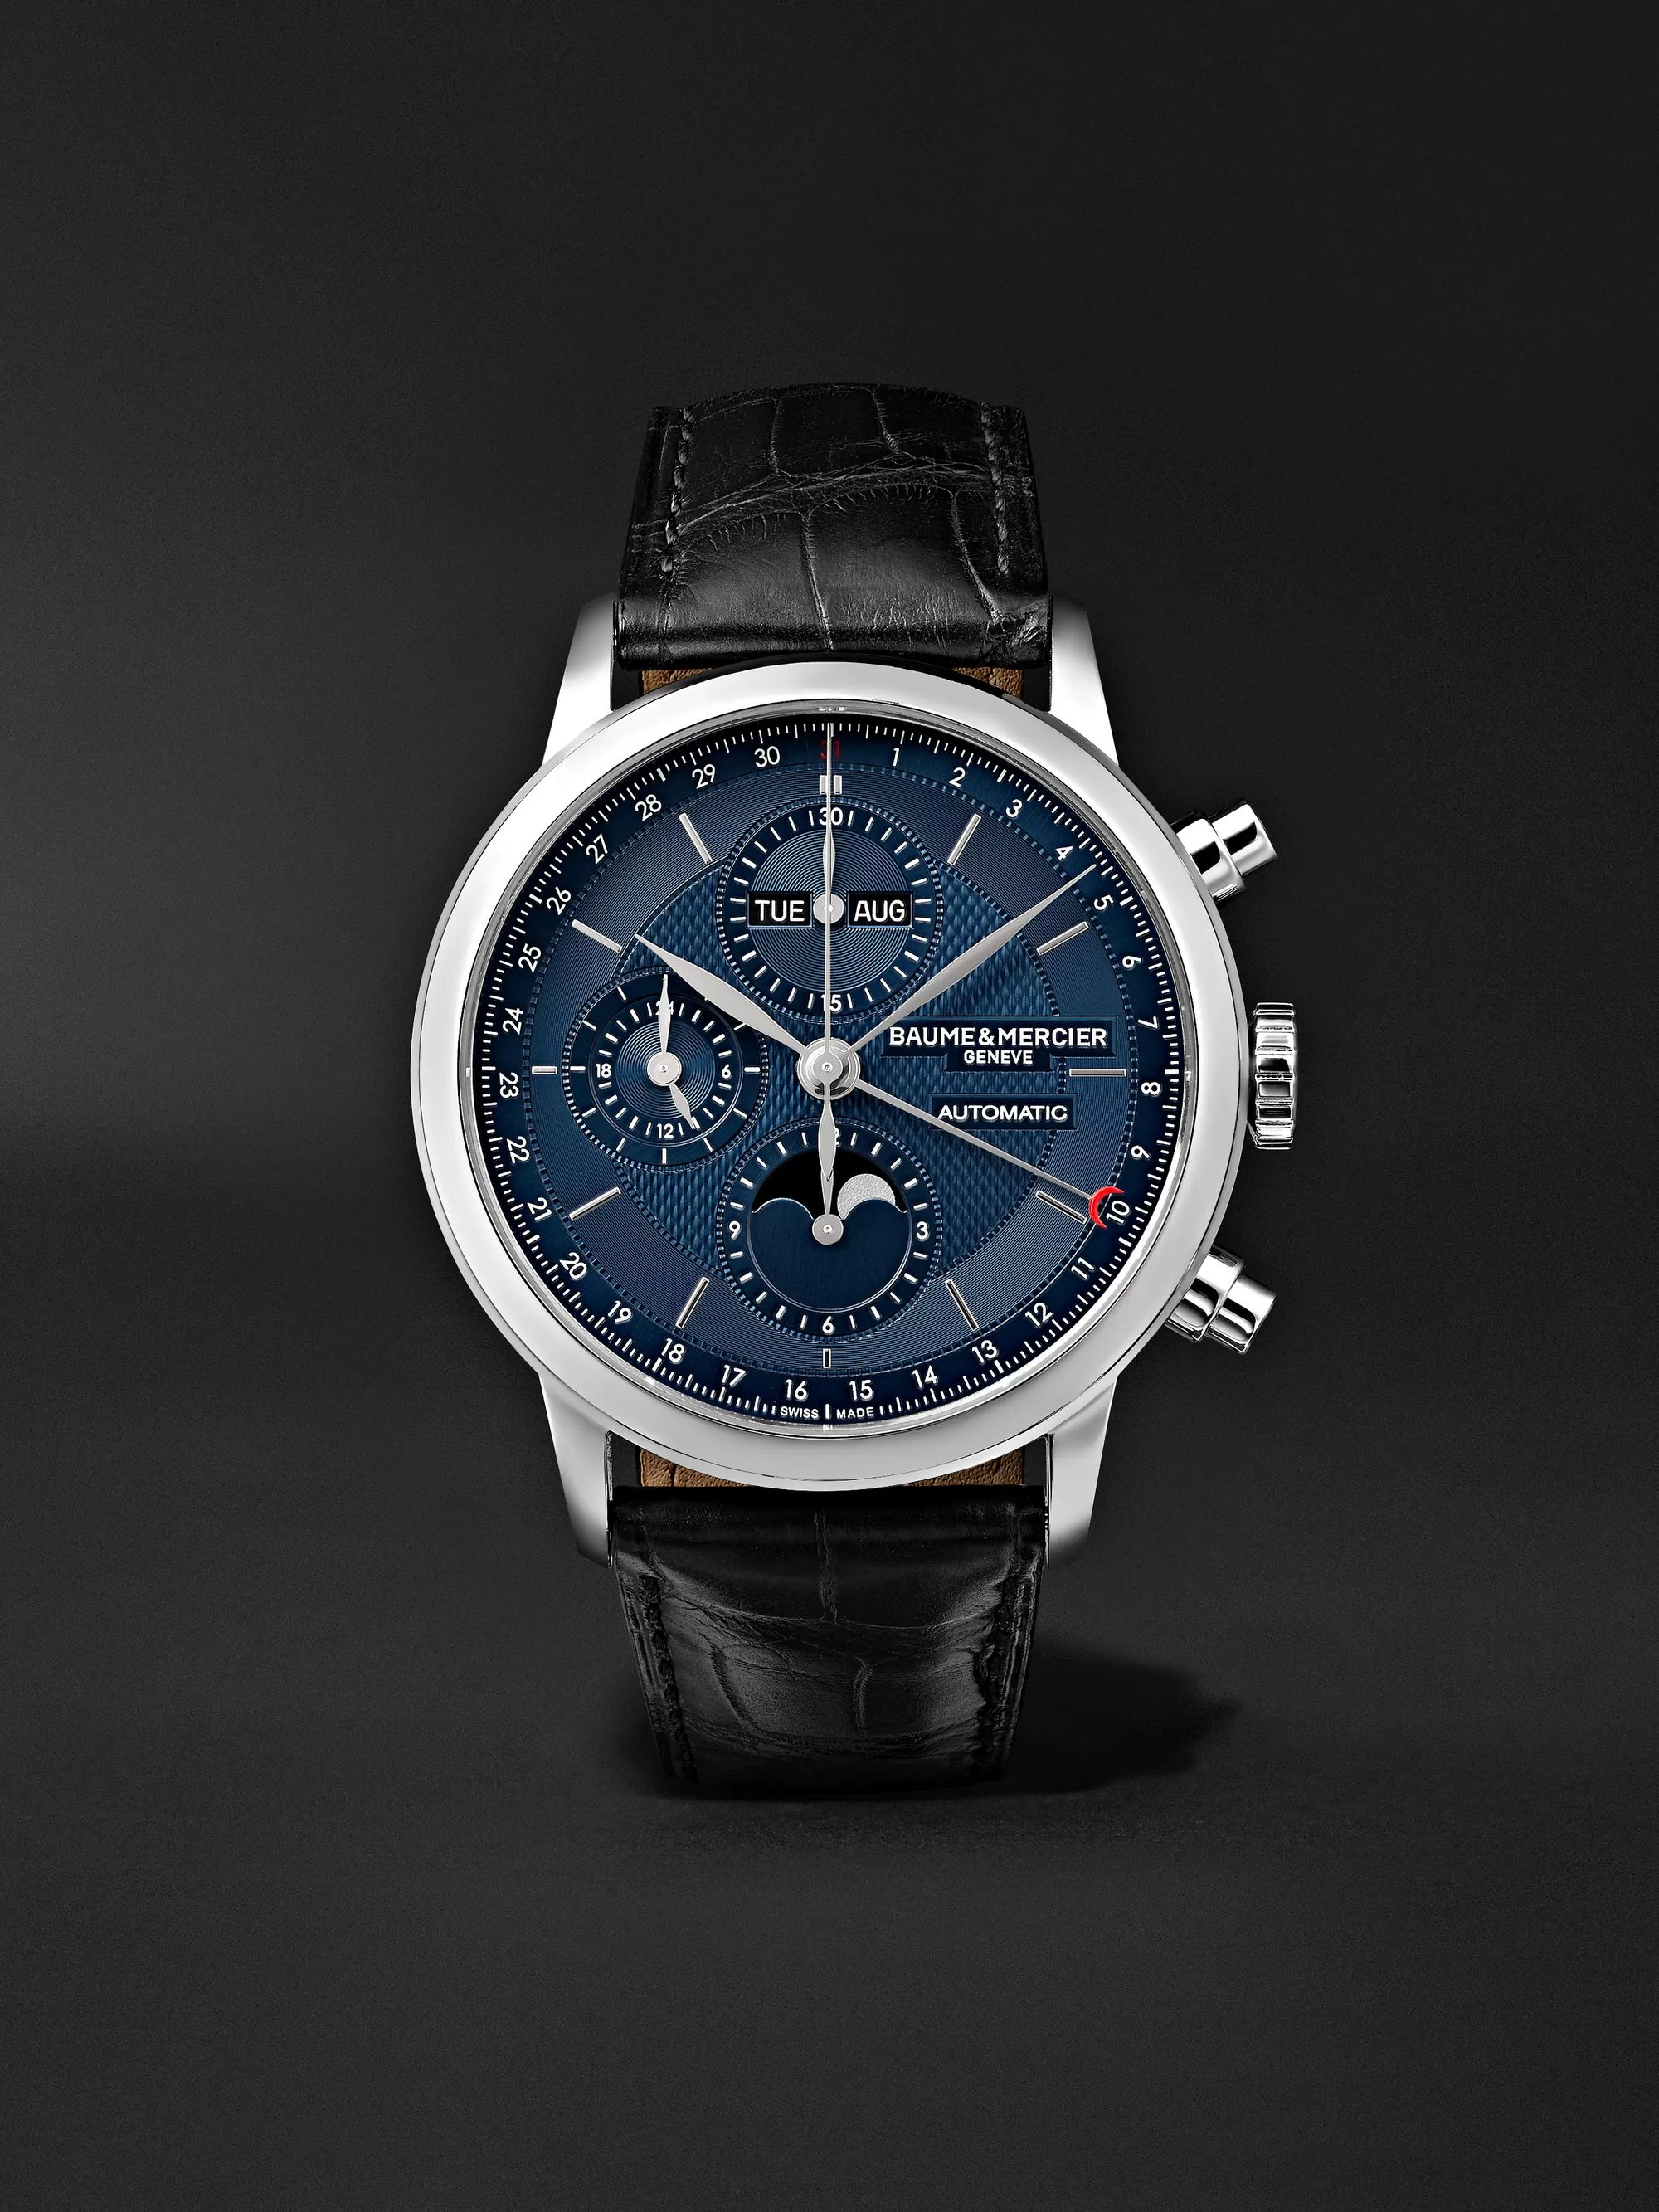 Baume & Mercier Classima Automatic Flyback Chronograph 42mm Stainless Steel and Alligator Watch, Ref. No. M0A10484